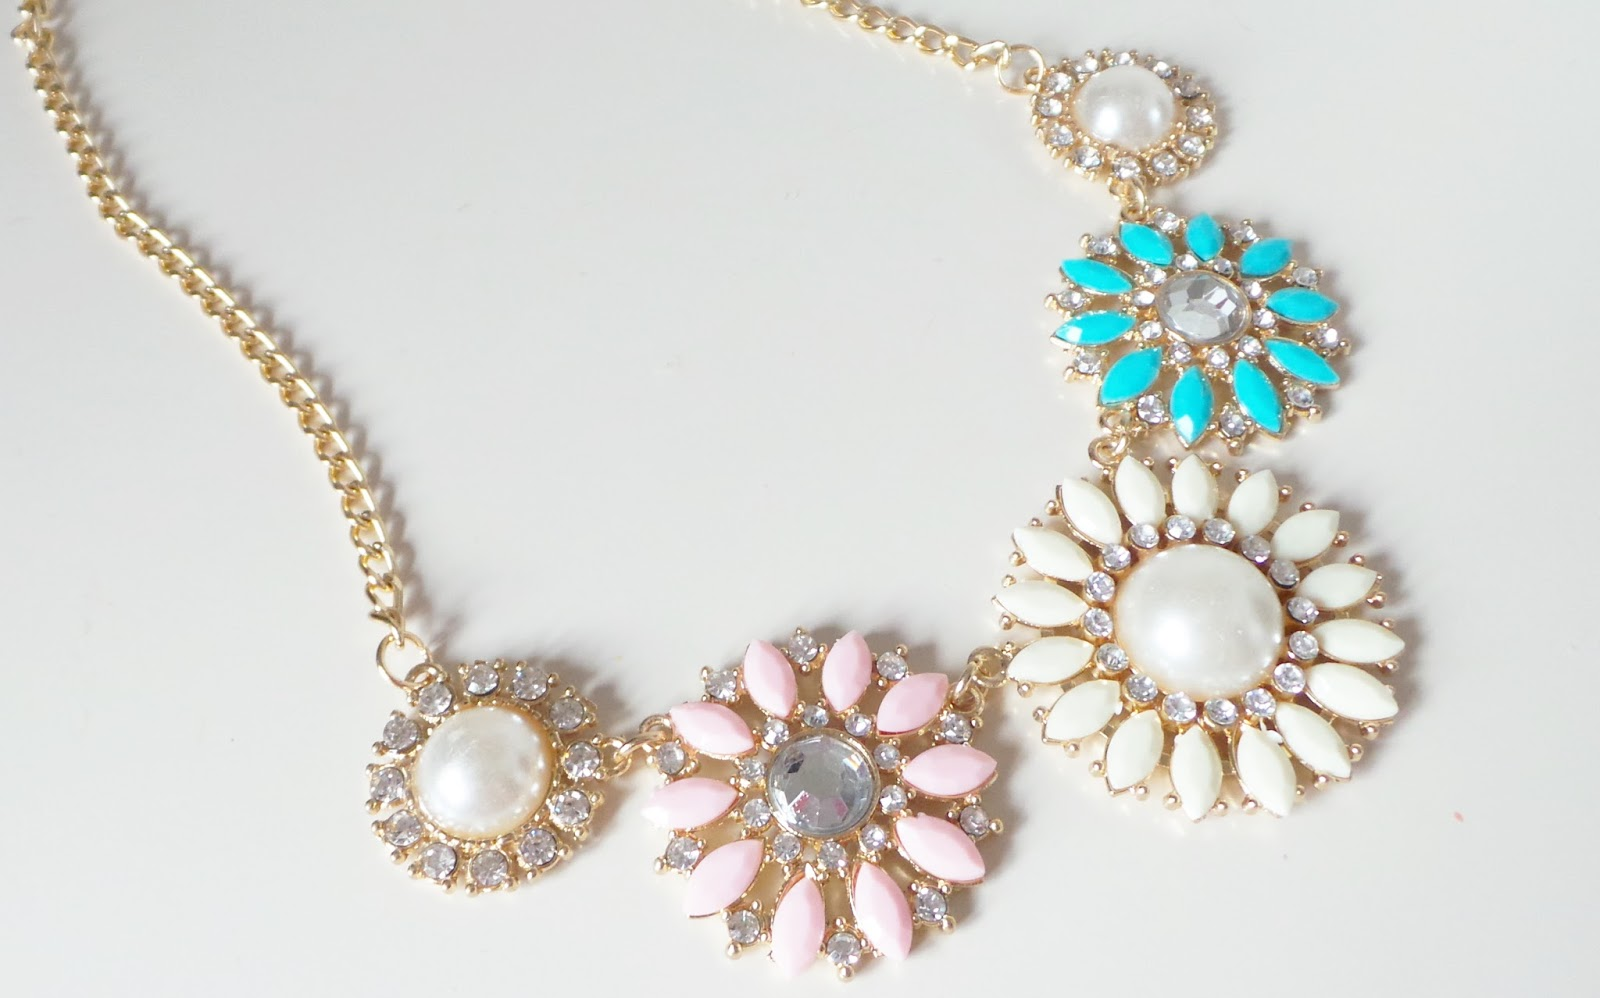 STATEMENT PASTEL FLOWER NECKLACE lauras all made up, fashion blog, fashion blogger, uk fashion blog, cheap fashion jewellery, ebay jewellery, ebay fashion jewellery, fashion, fashion statement, pretty watches, pastel necklaces, statement jewellery, statement necklace, summer jewellery, geneva watches, rose gold jewellery,